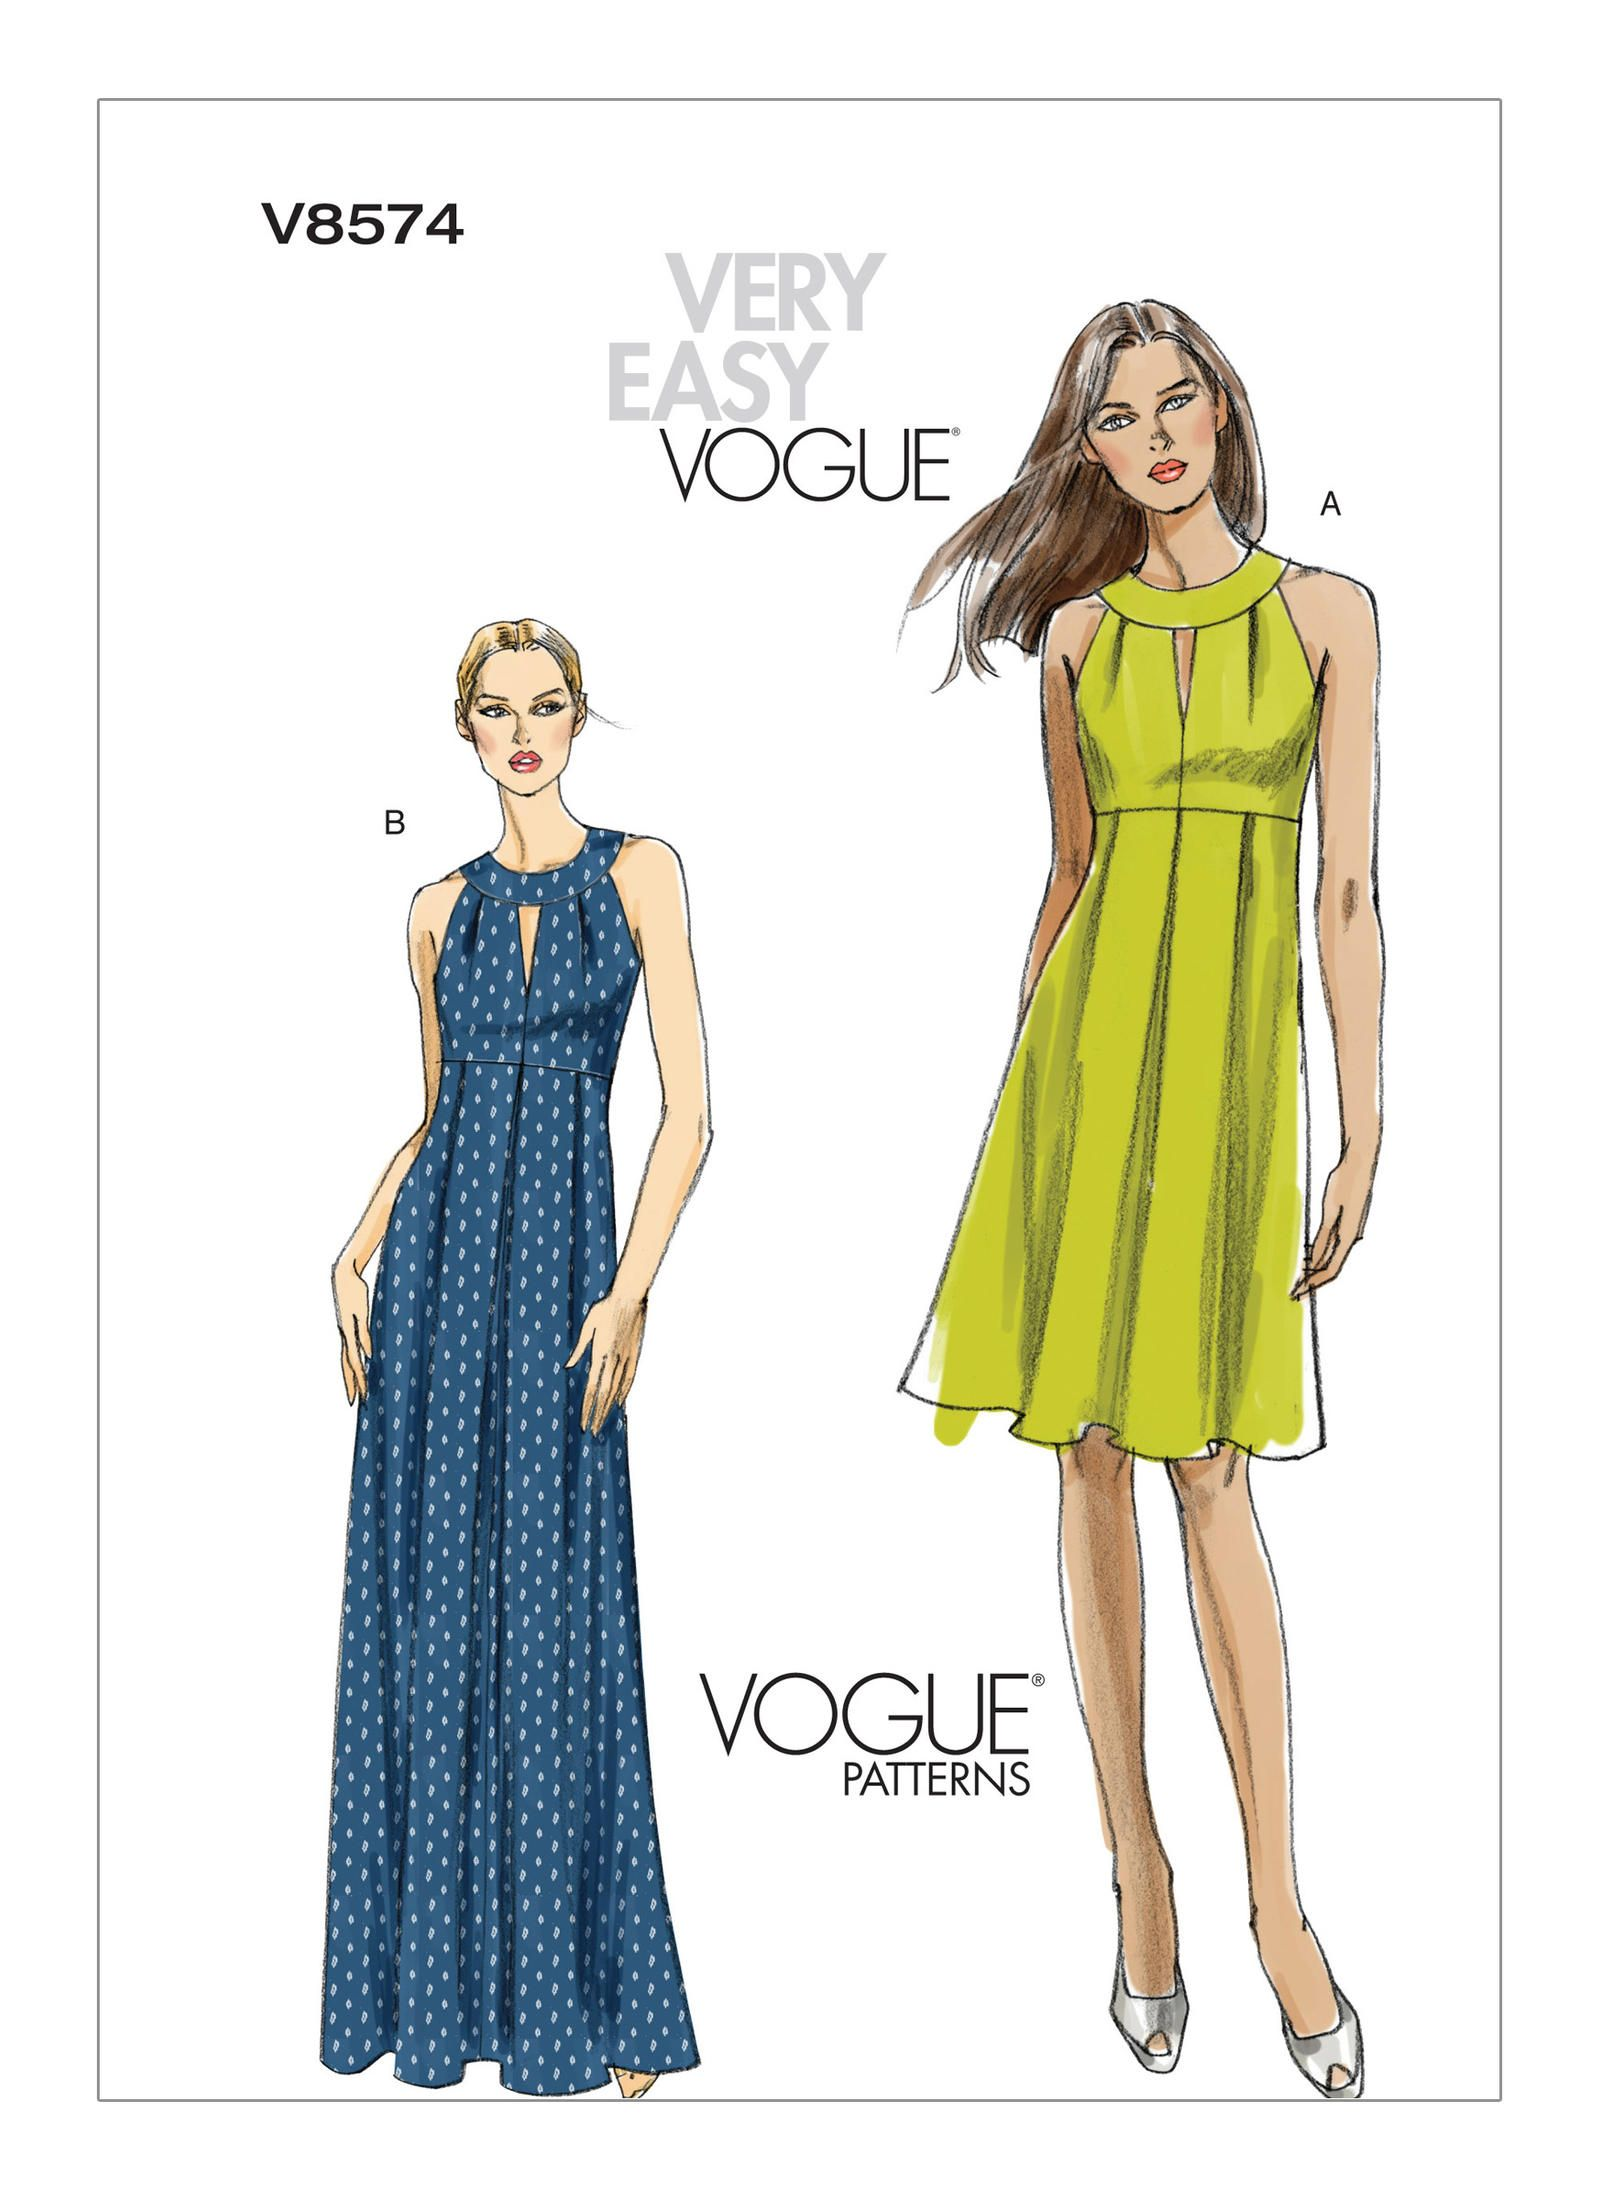 V8574 vogue patterns patterns pinterest vogue patterns buy vogue womens dresses sewing pattern 8574 from our sewing patterns range at john lewis ombrellifo Images